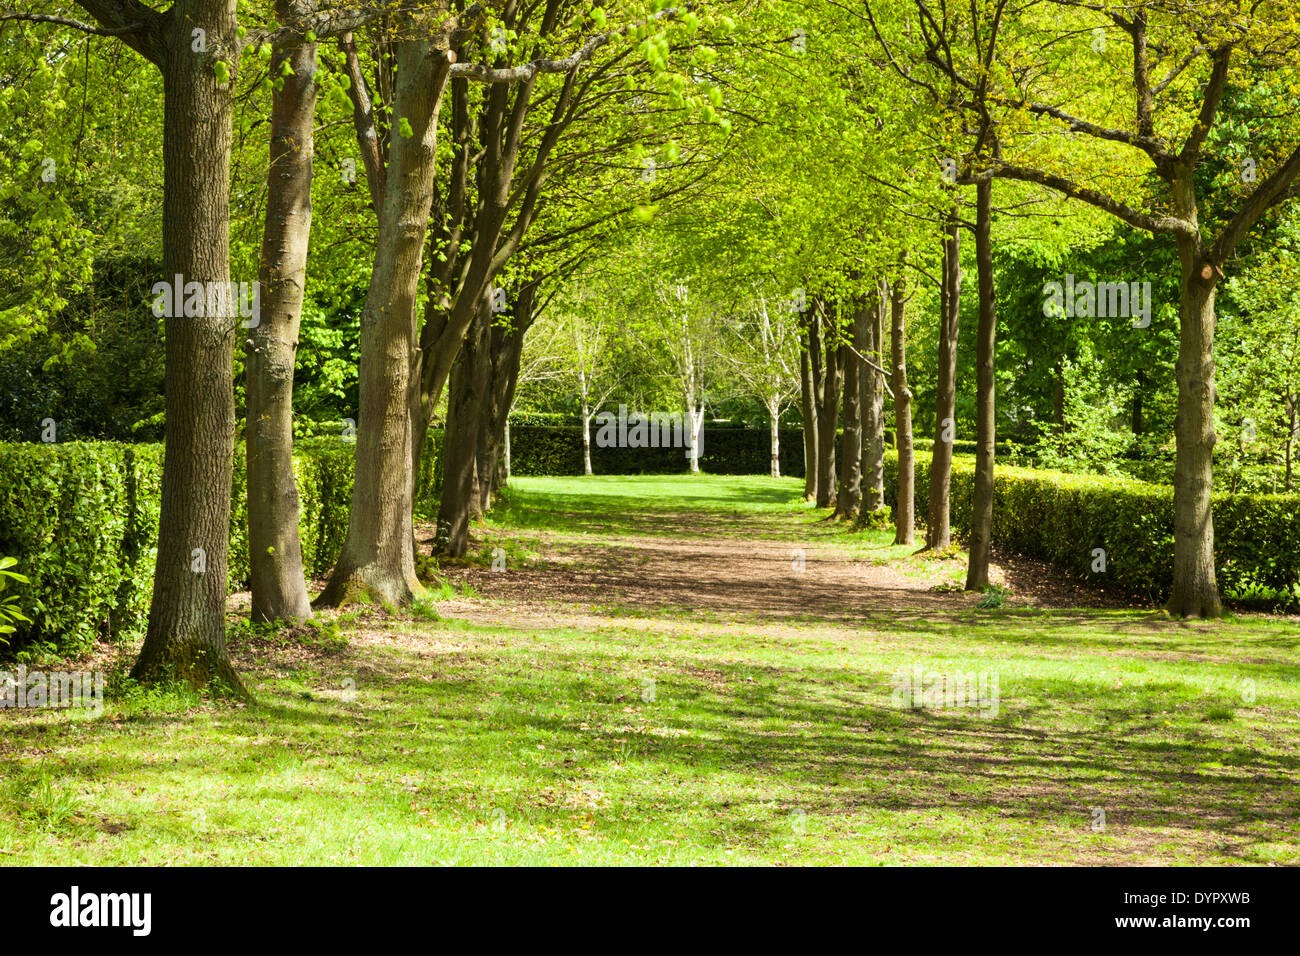 An avenue of lime trees forms the Nave within Whipsnade Tree Cathedral; Silver Birch form the chancel, Bedfordshire, England - Stock Image